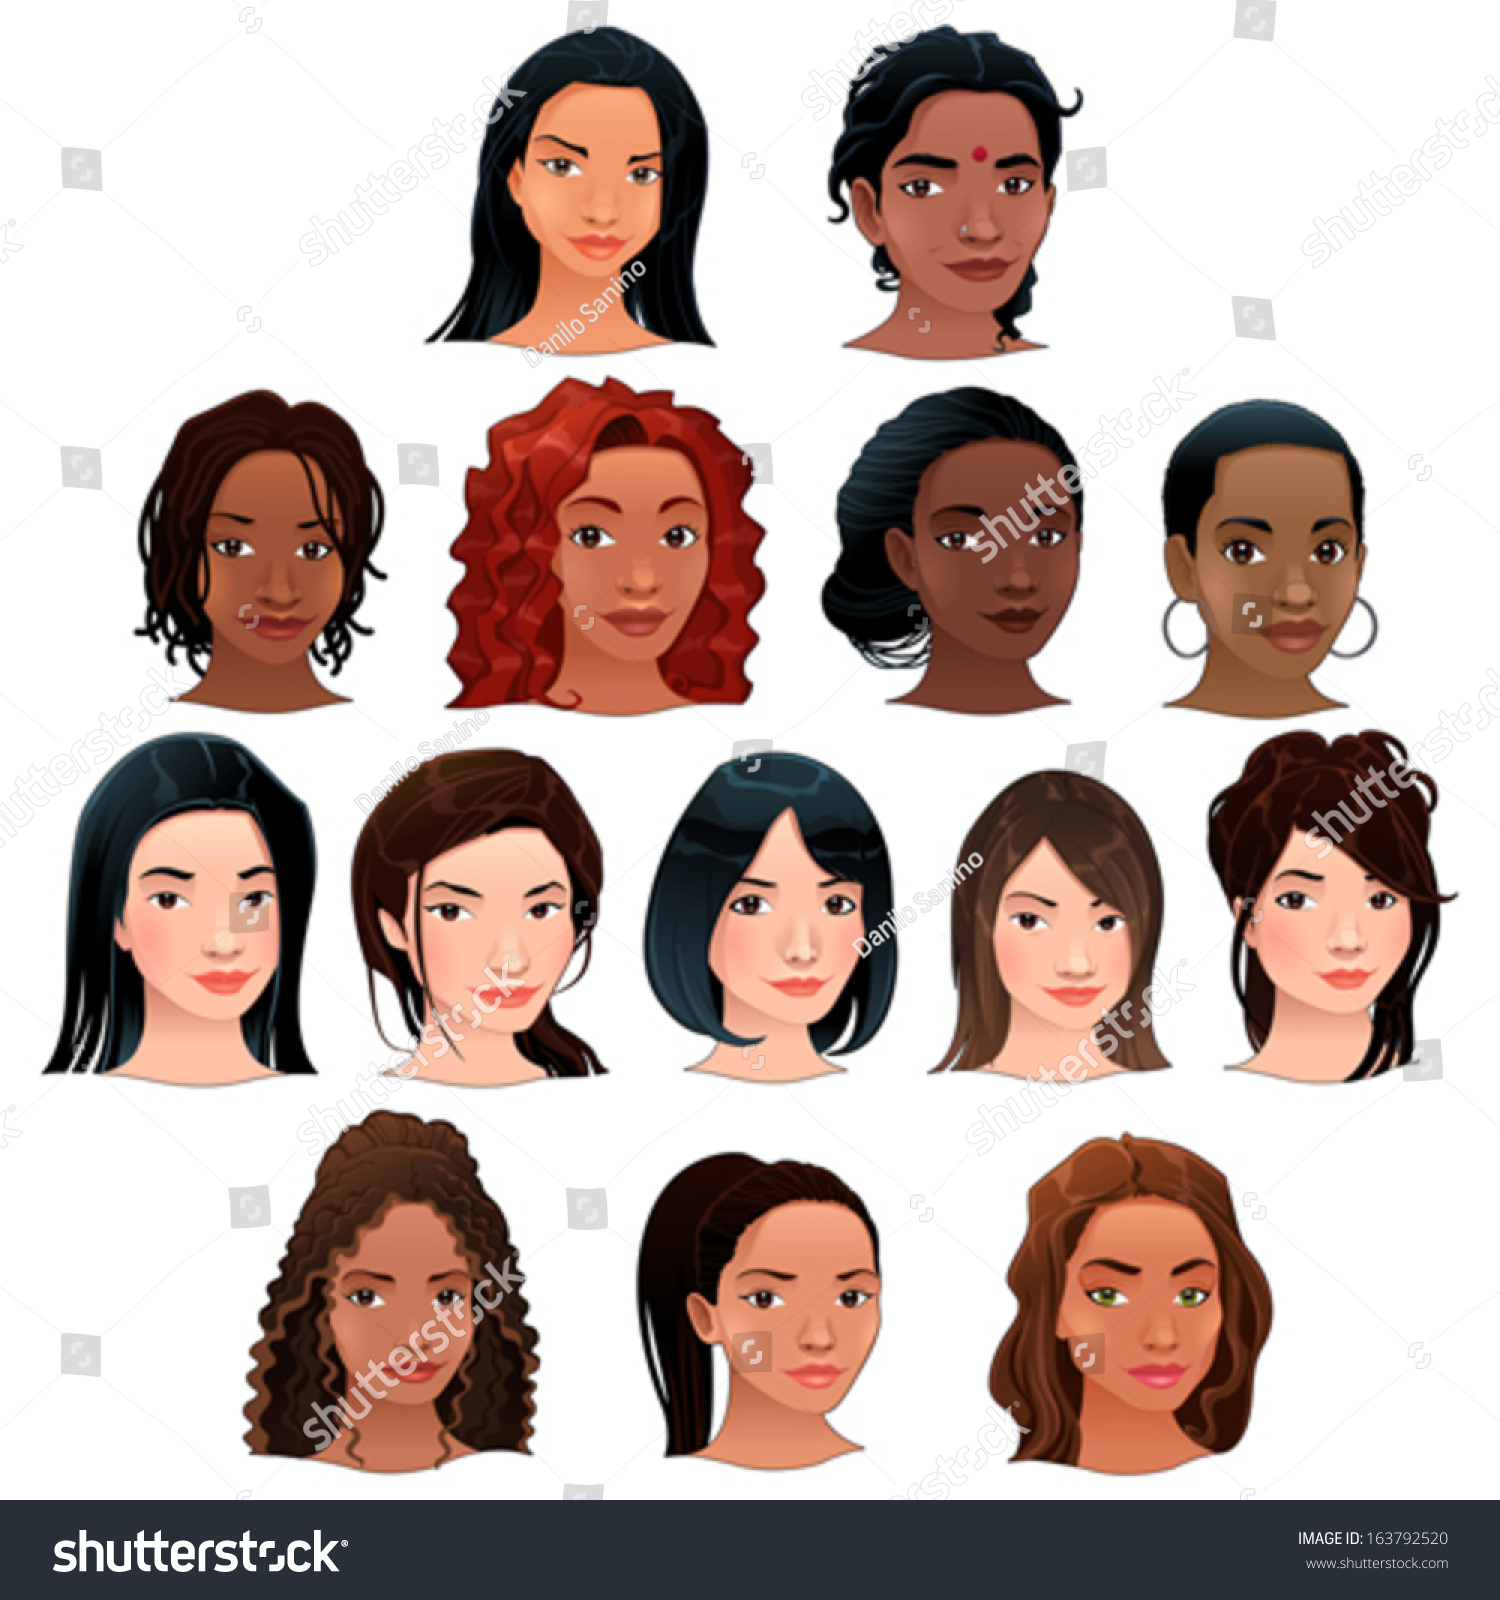 Crowd Of Indian Women Vector Avatars Stock Vector: Indian, Black, Asian And Latino Women. Vector Isolated